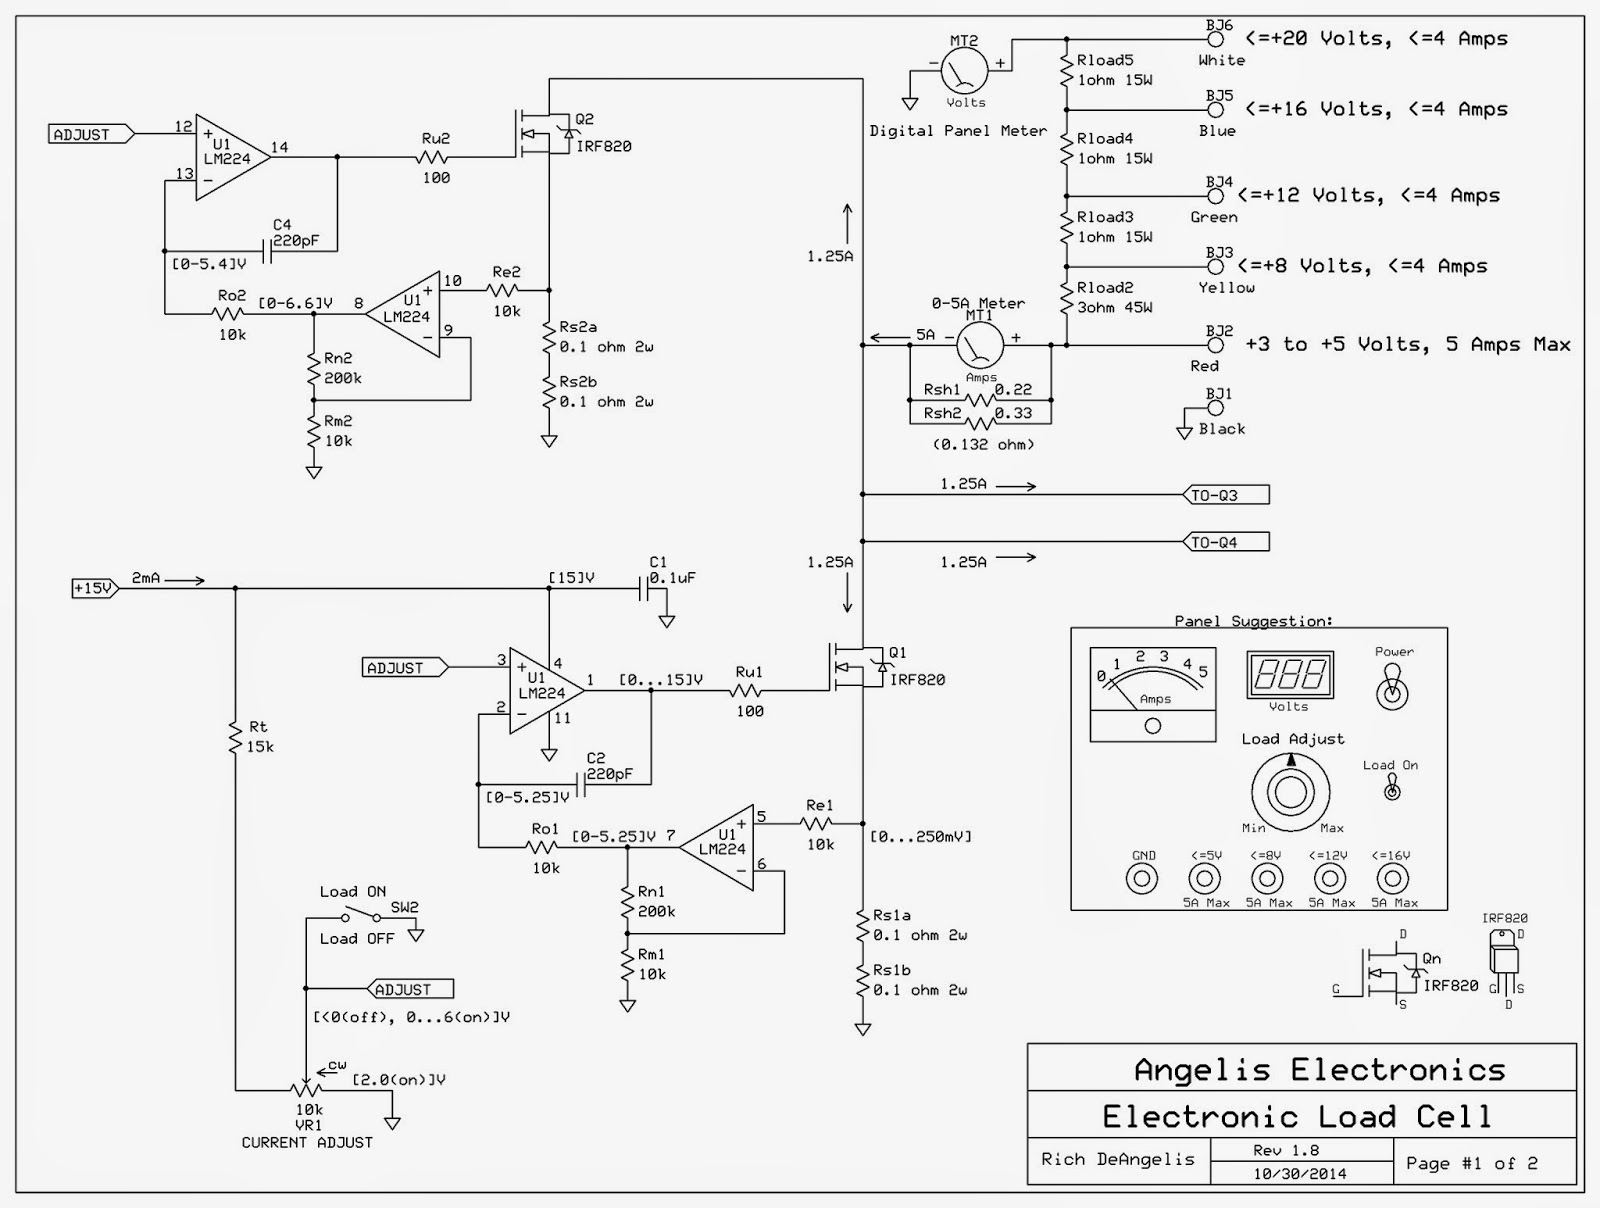 Electronic Load Simulator Angelis Electronics Rgb 3 Watt Led Color Mixer Controller Circuit Making Use Of Ic Lm317 I Documented Some The Expected Voltages And Currents On Schematic All Incoming From Banana Jacks Travel Through